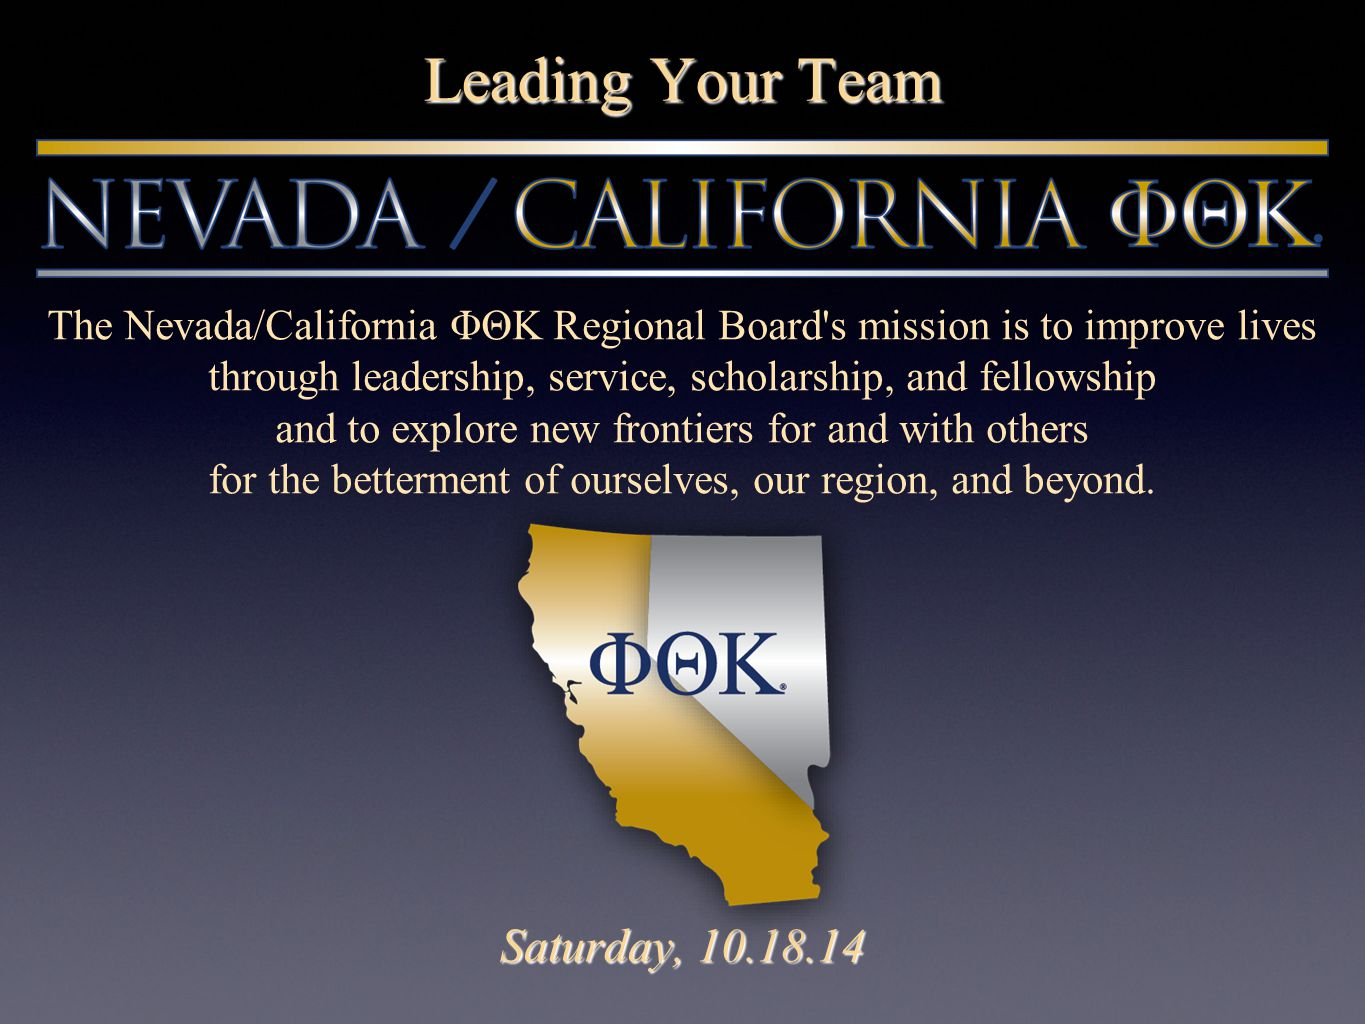 Leading Your Team Saturday, 10.18.14 The Nevada/California ΦΘΚ Regional Board s mission is to improve lives through leadership, service, scholarship, and fellowship and to explore new frontiers for and with others for the betterment of ourselves, our region, and beyond.